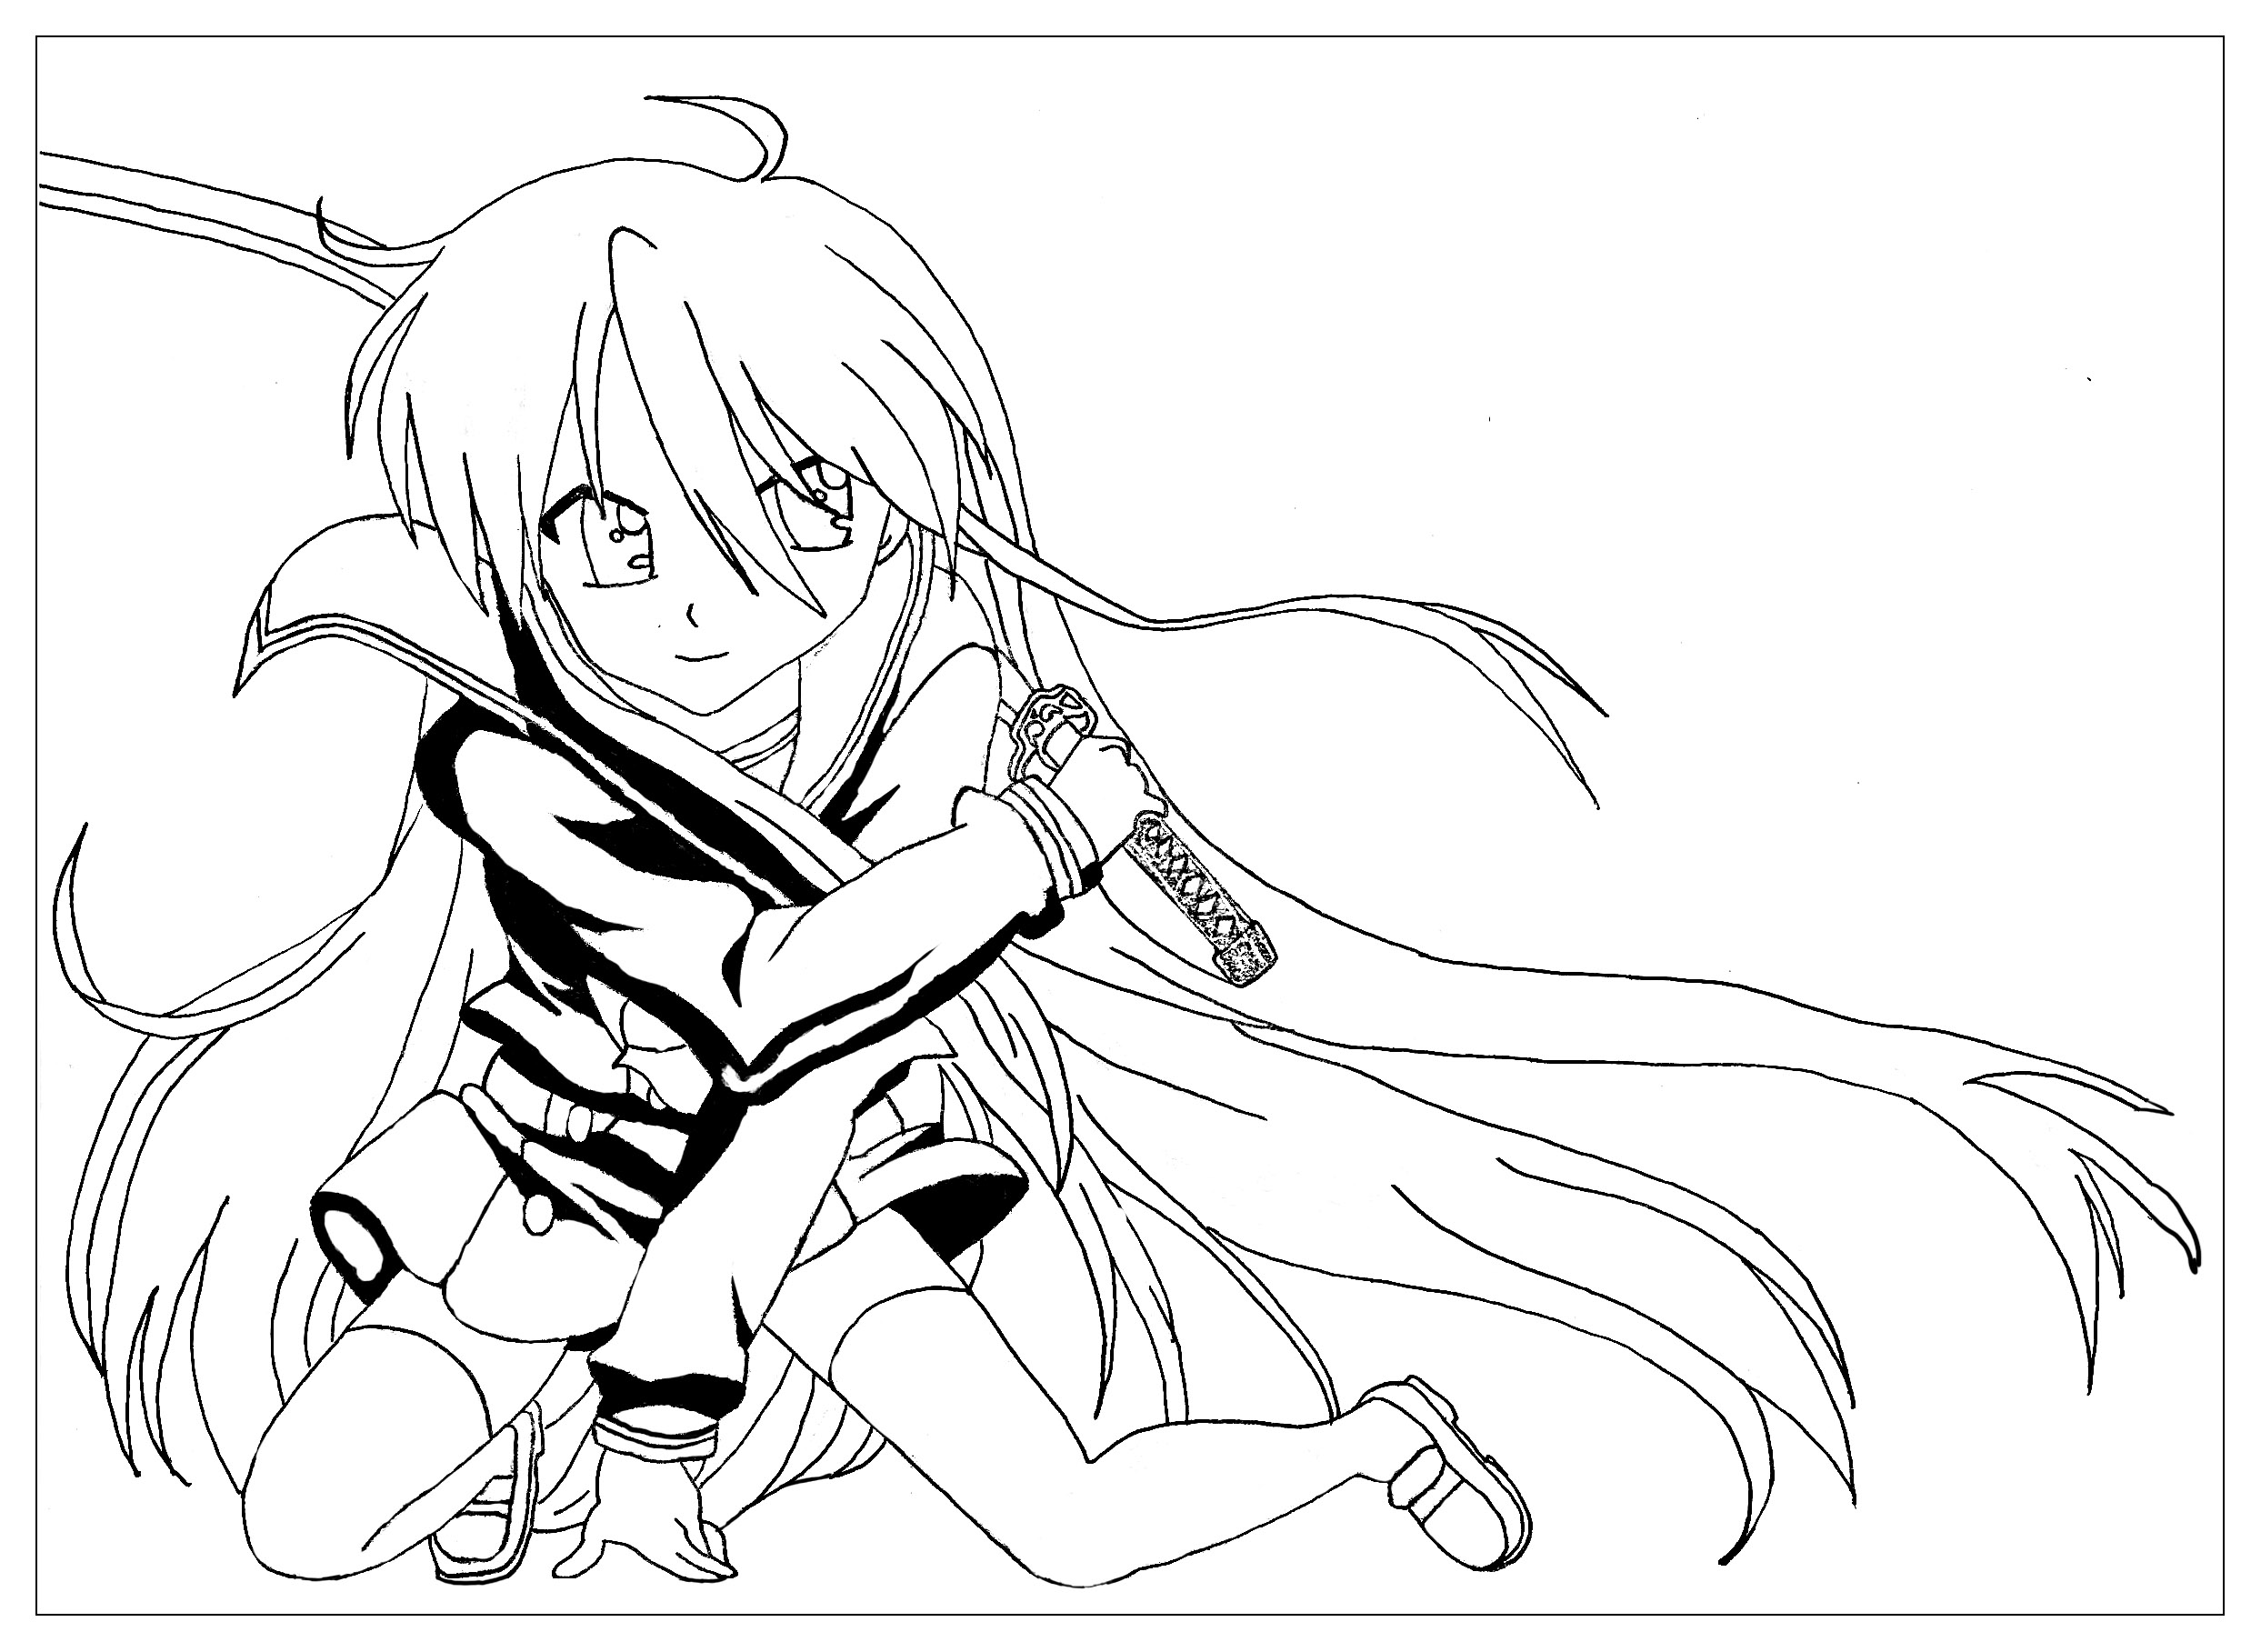 2487x1817 Manga Saber Warrior Girl Krissy Manga Anime Coloring Pages Manga